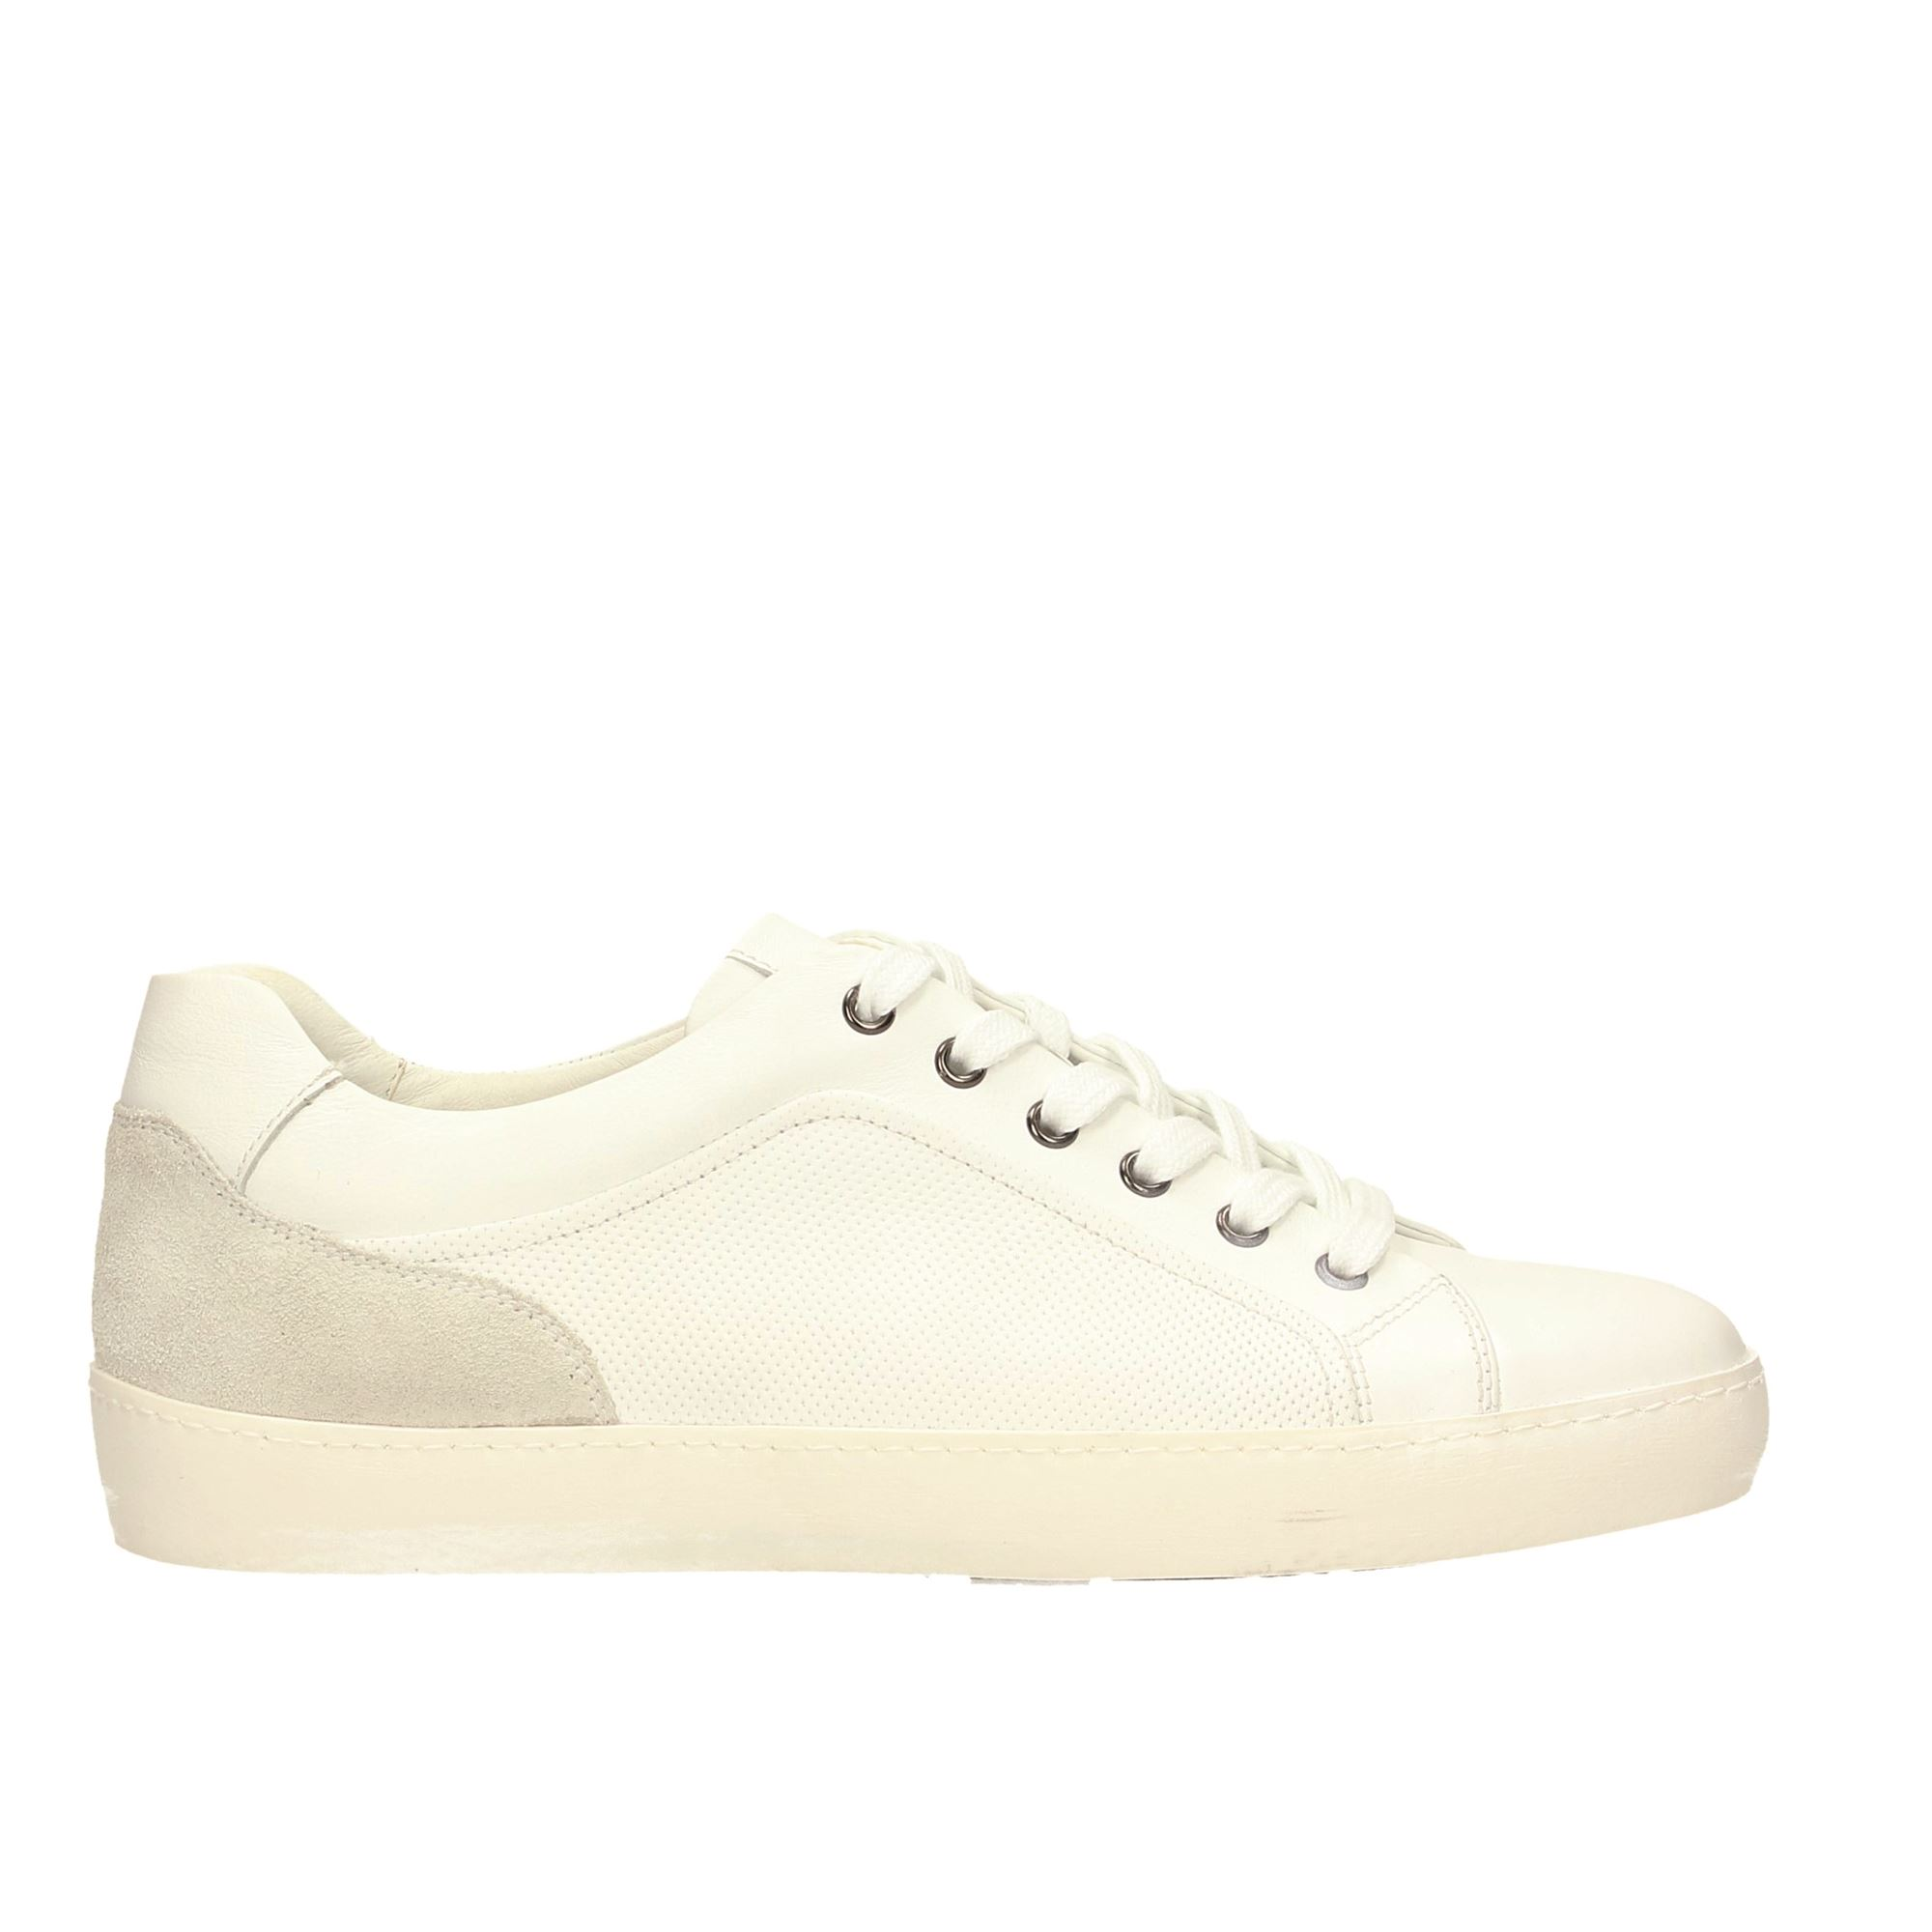 Tata Italia Shoes Man Sneakers White MS-378R04